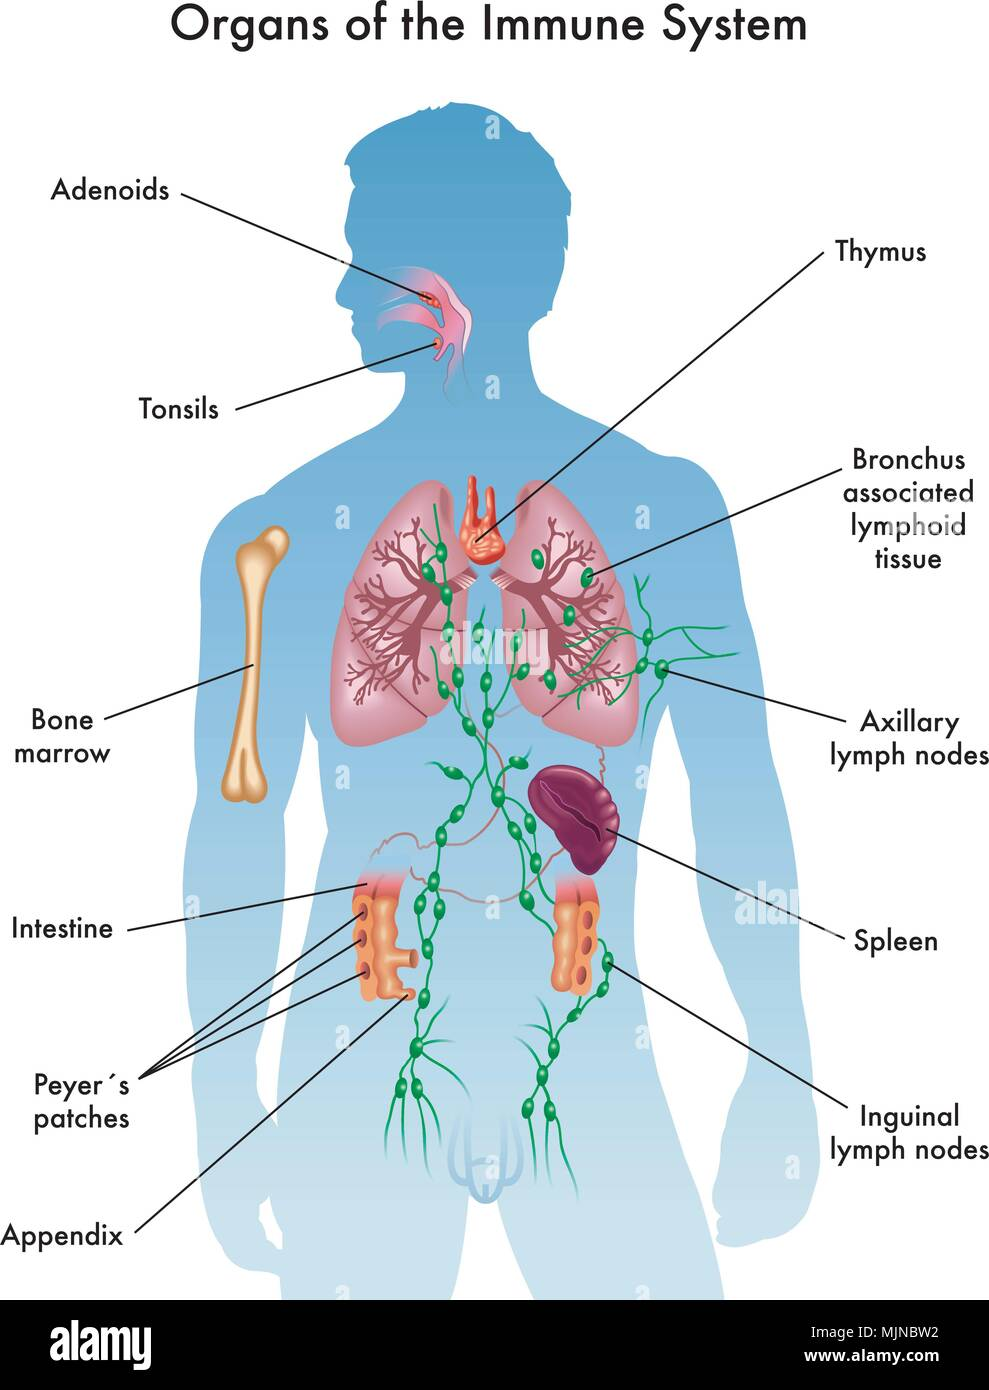 vector medical illustration of organs of the immune system - stock image